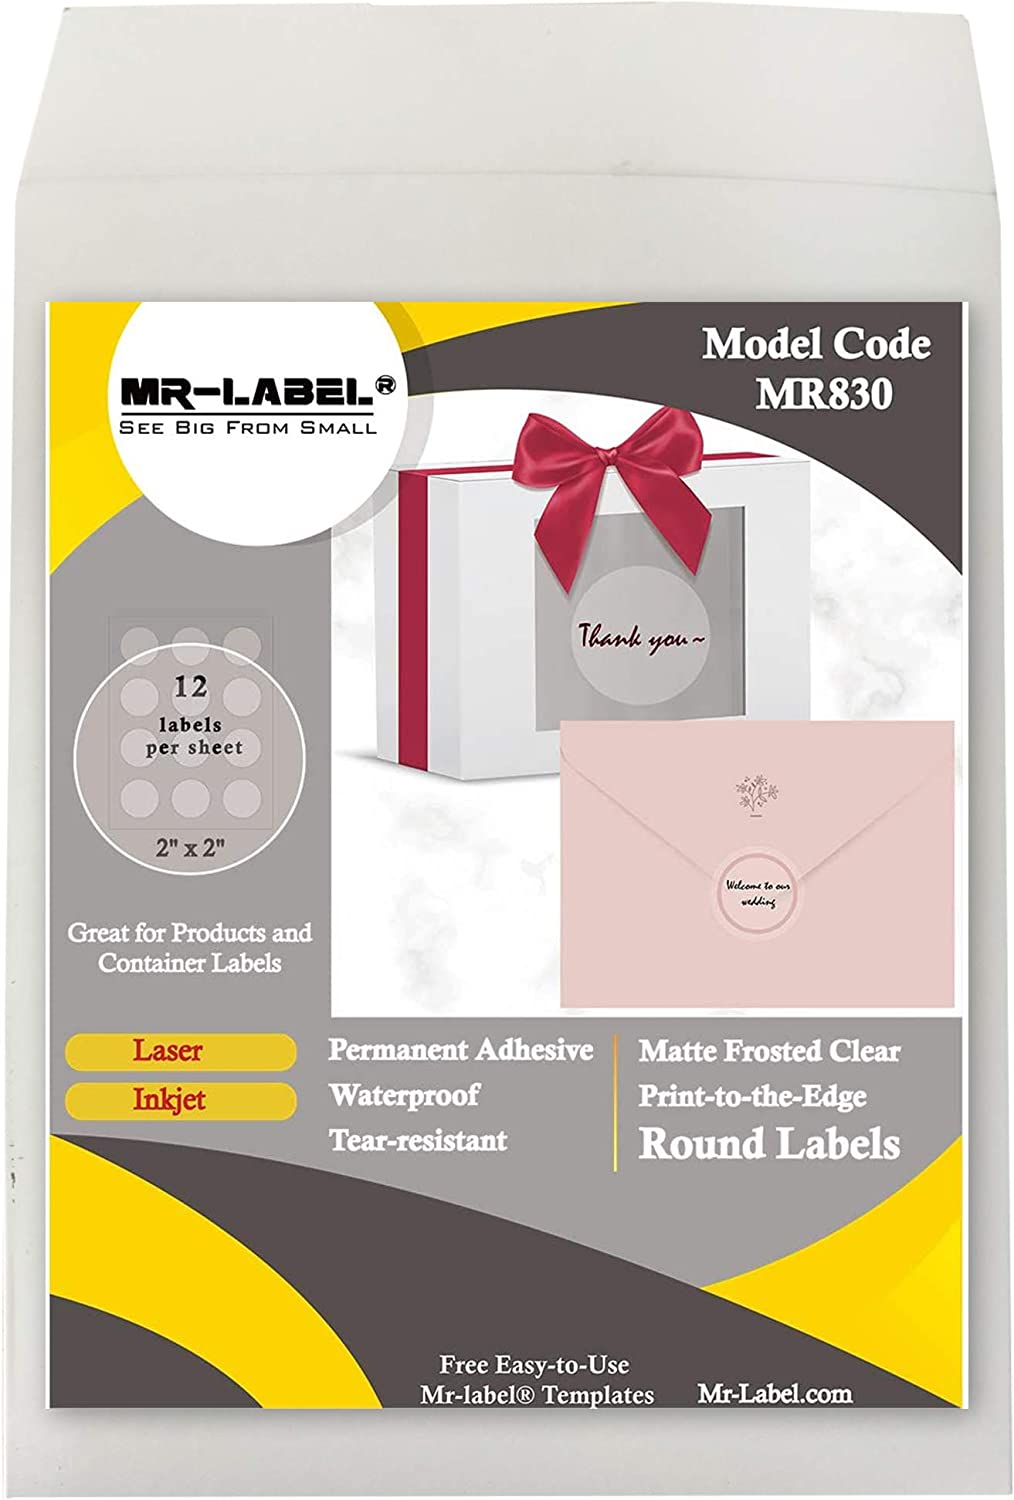 "Mr-Label 2"" Matte Frosted Clear Round Labels - Waterproof and Tear-Resistant - for Inkjet & Laser Printer - Permanent Adhesive - for Food Package 